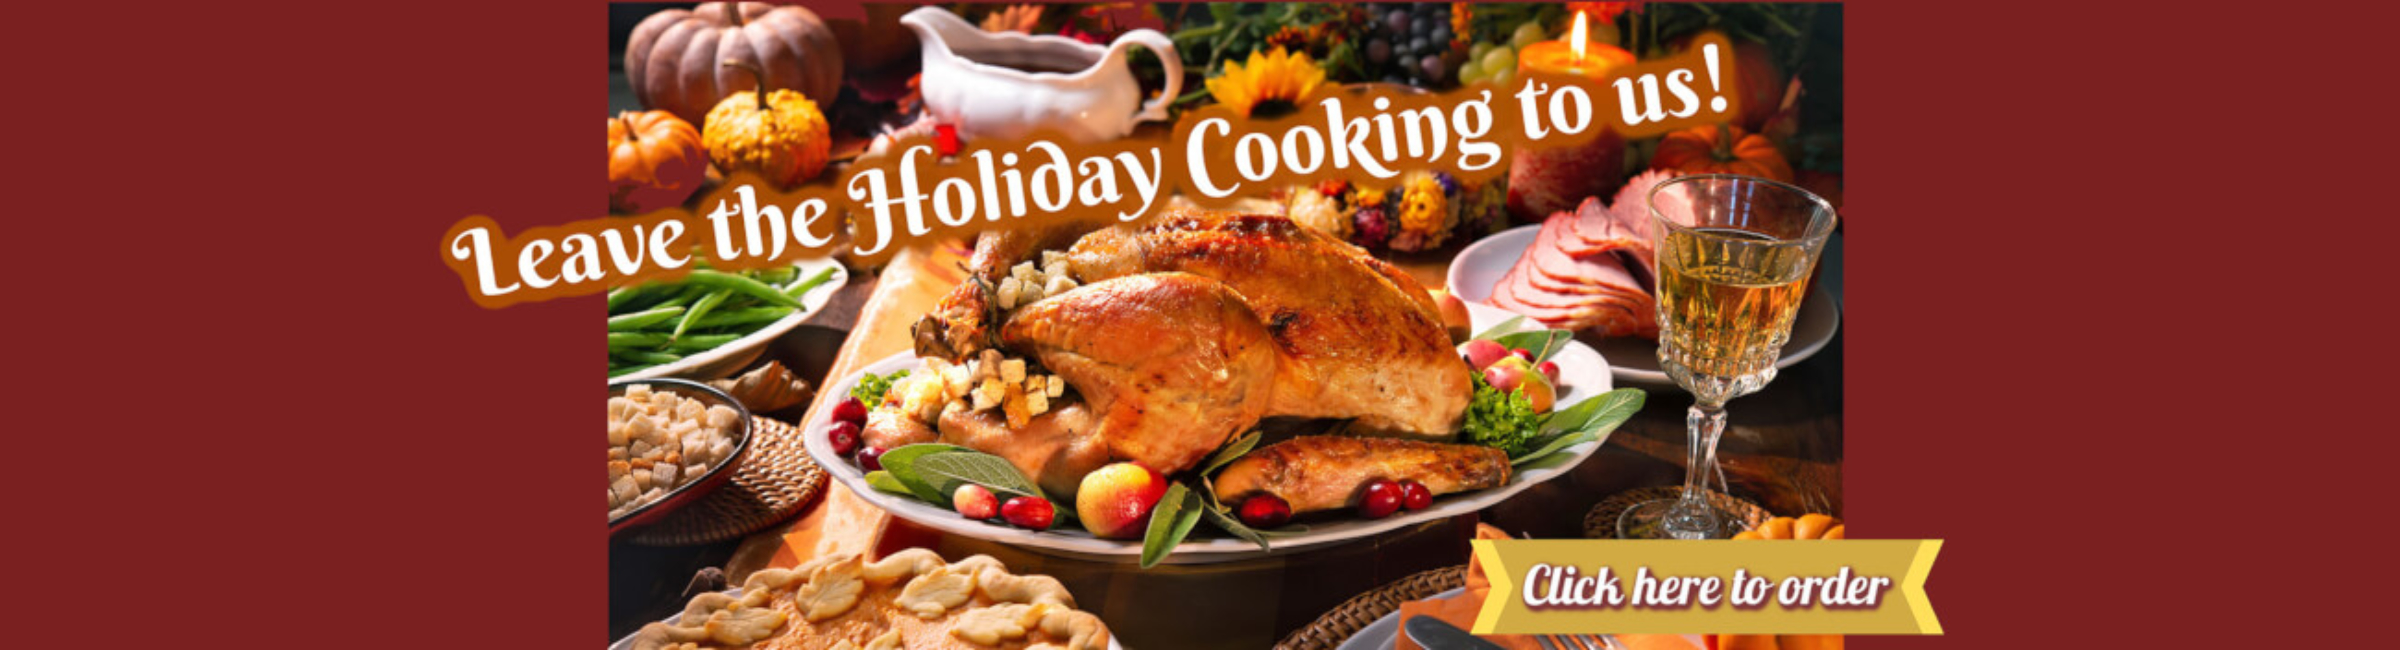 Leave the Holiday Cooking to us!